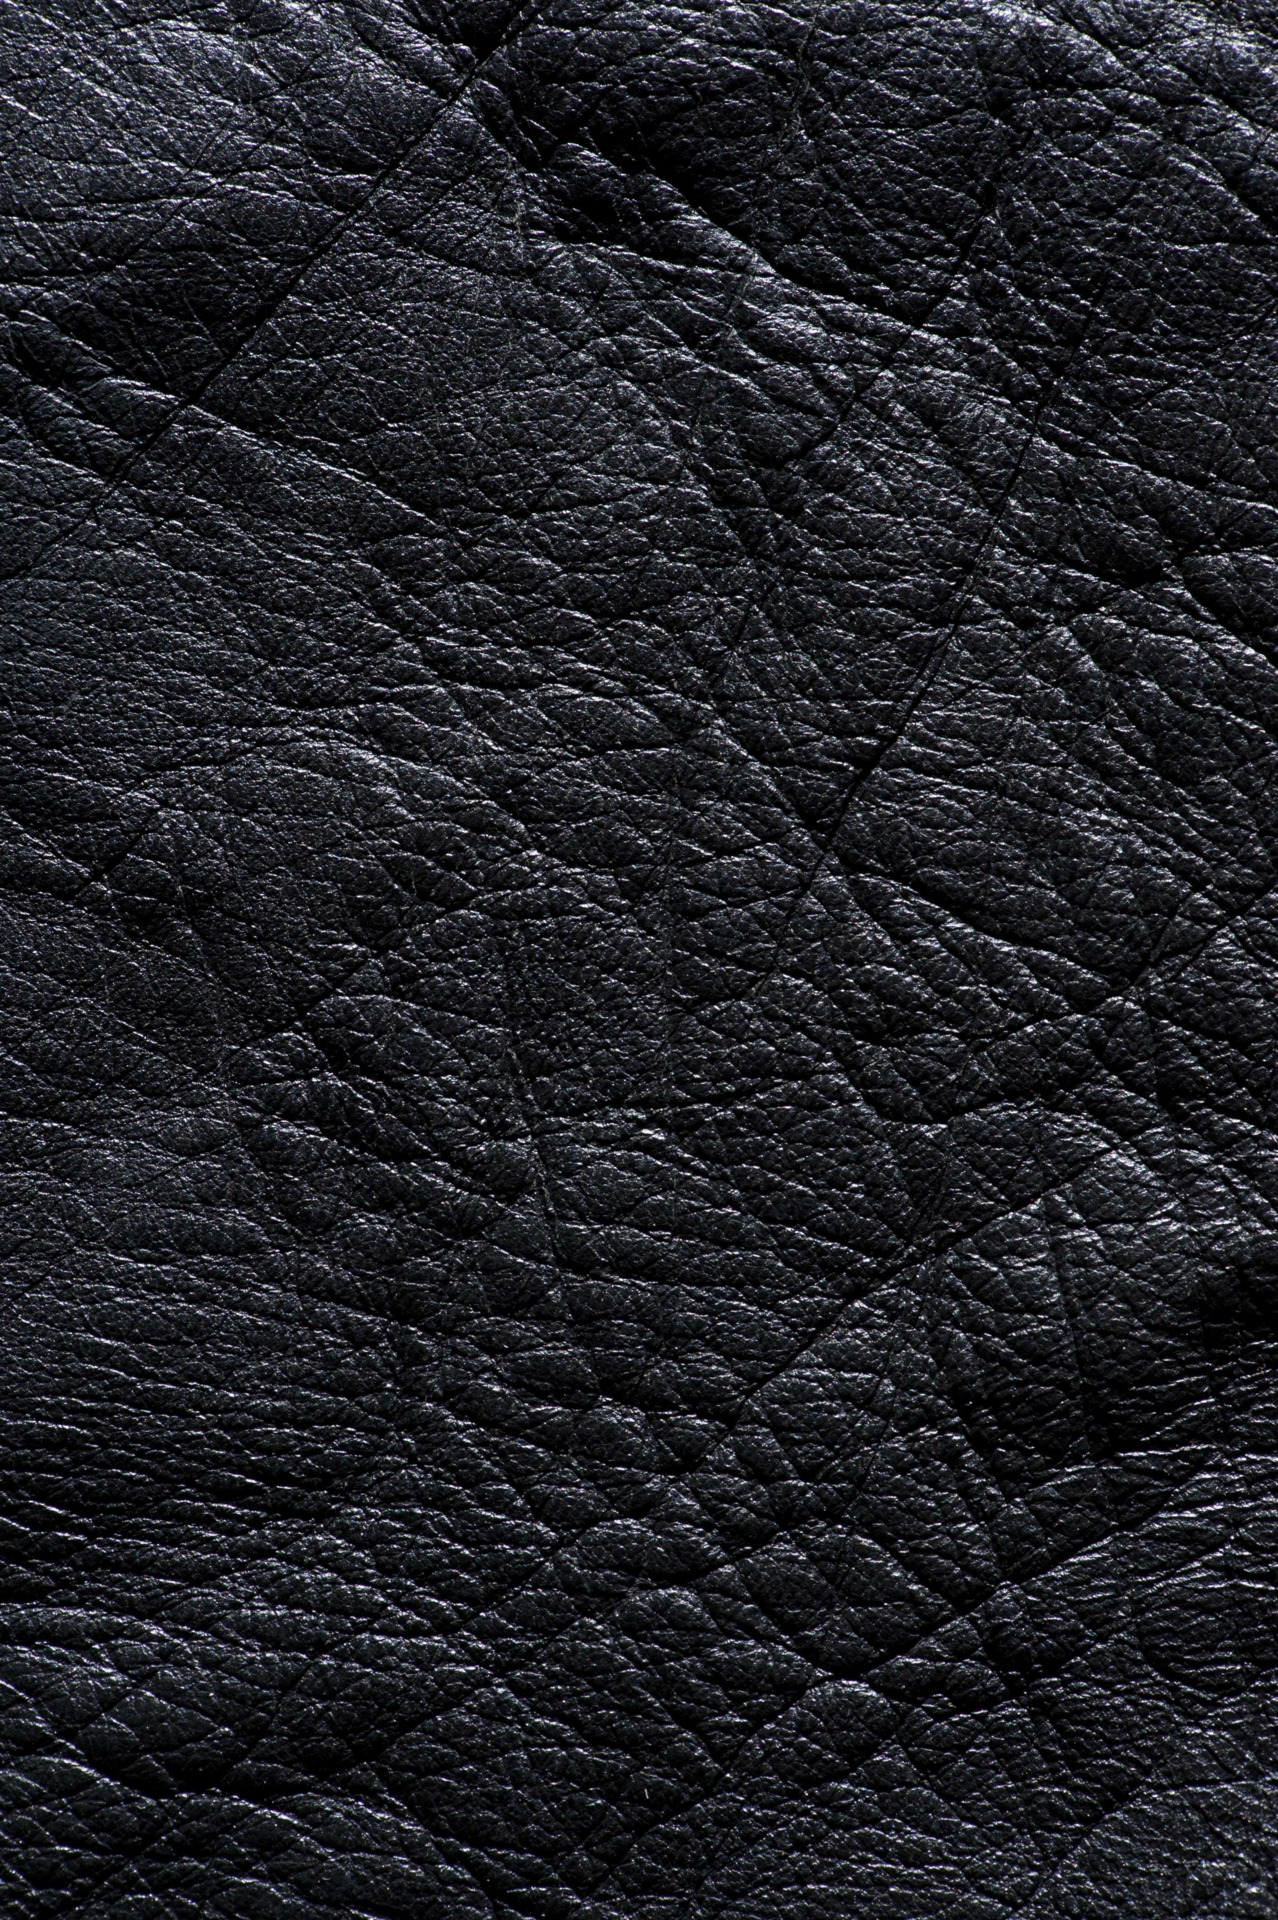 Black Textured Wallpaper File Black Leather Texture 7241544232 Jpg Wikimedia